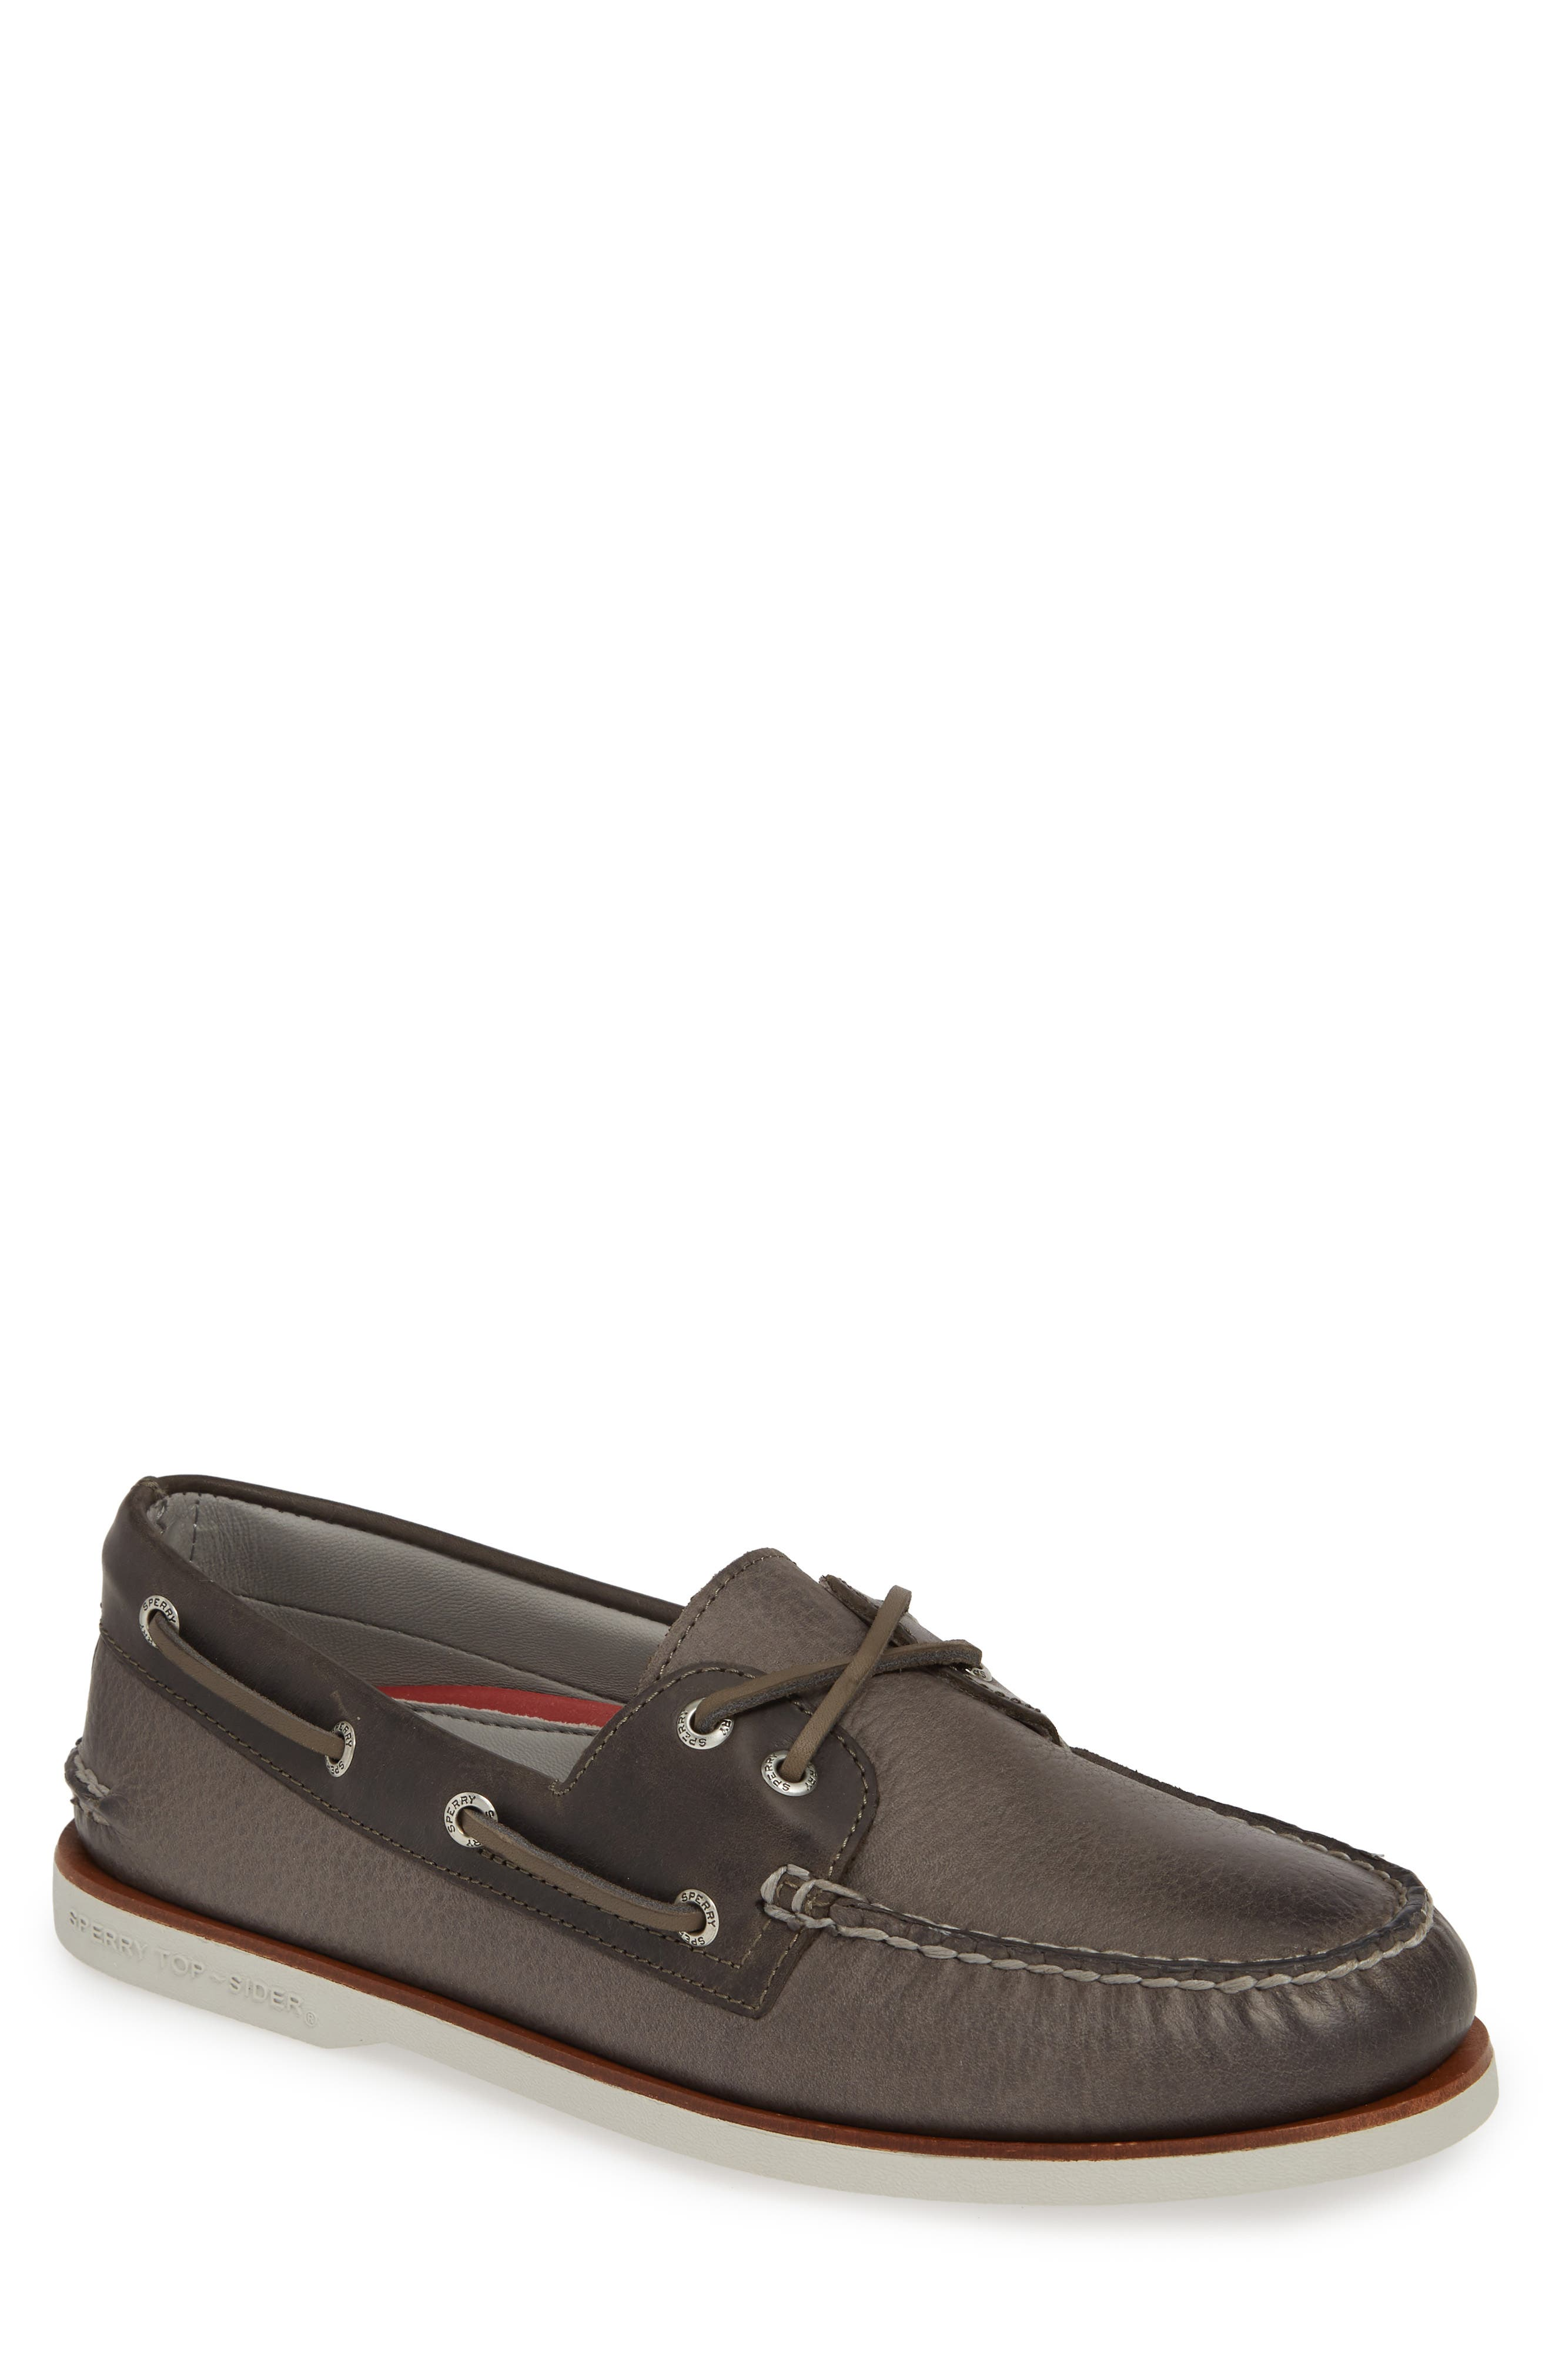 SPERRY Authentic Original Gold Rivinton Boat Shoe, Main, color, GREY